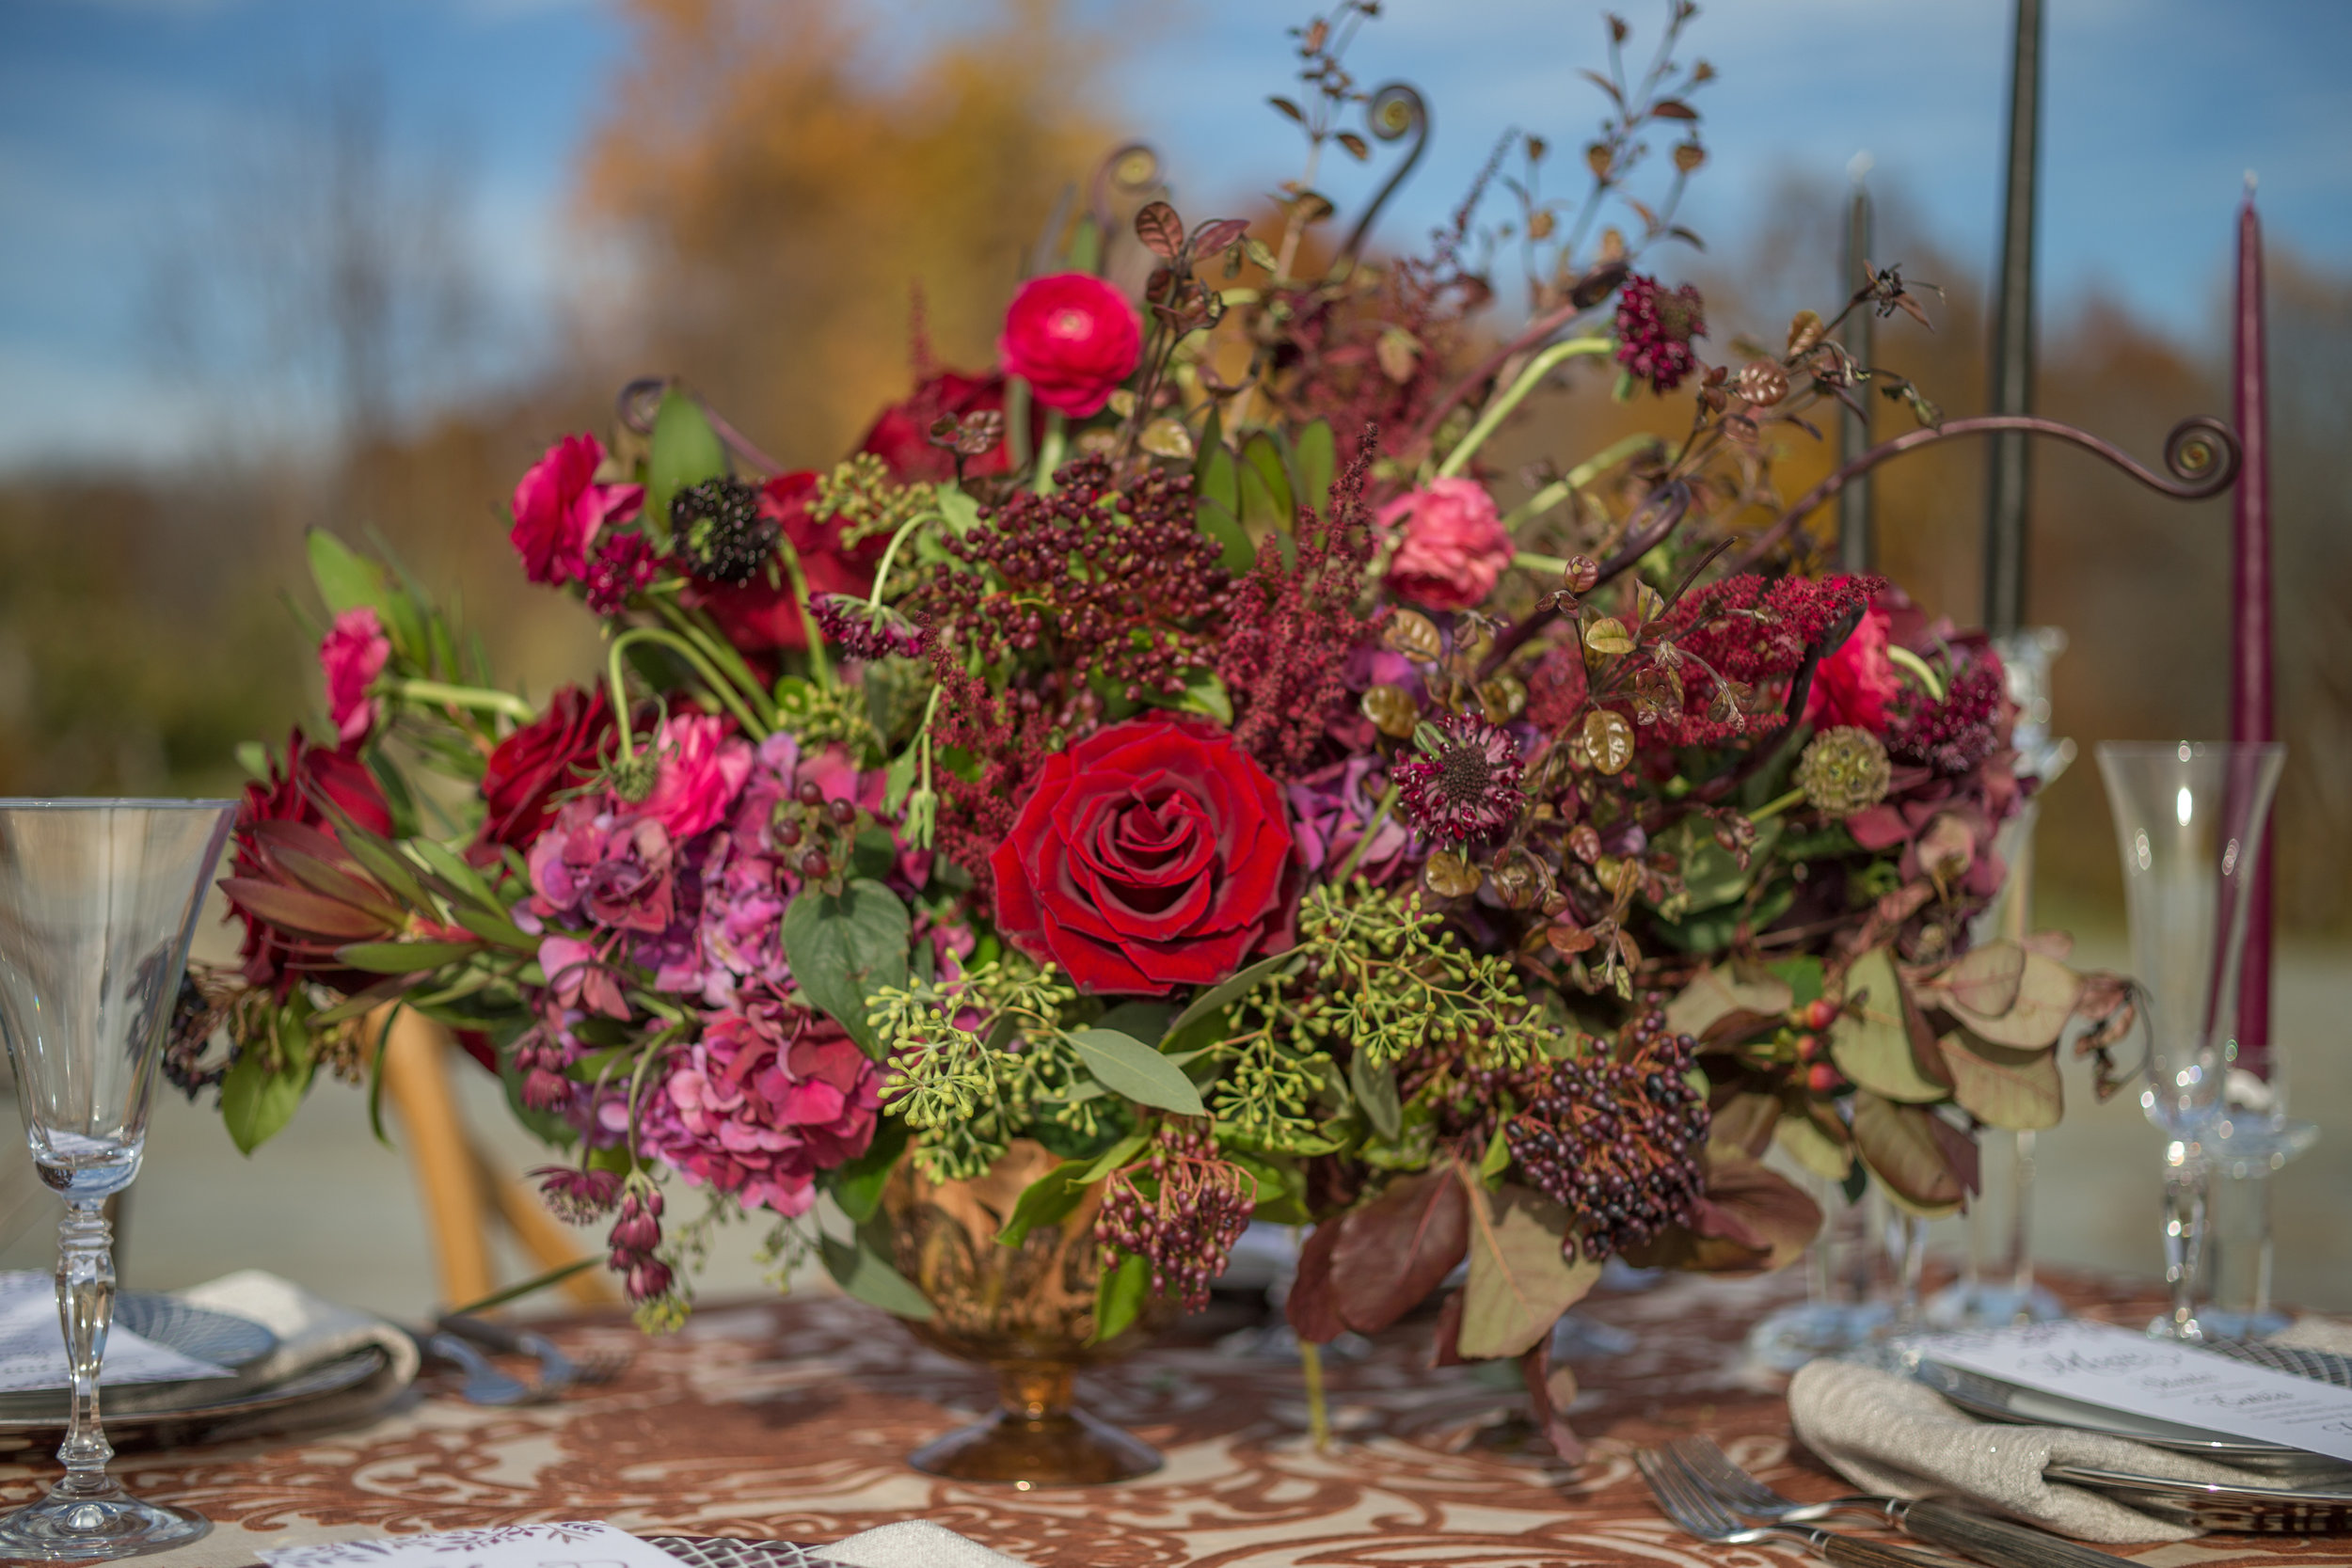 NYC Wedding Planner Ashley Douglass Events at Harvest Moon Farm Orchard with Blade NYC Floral Designs